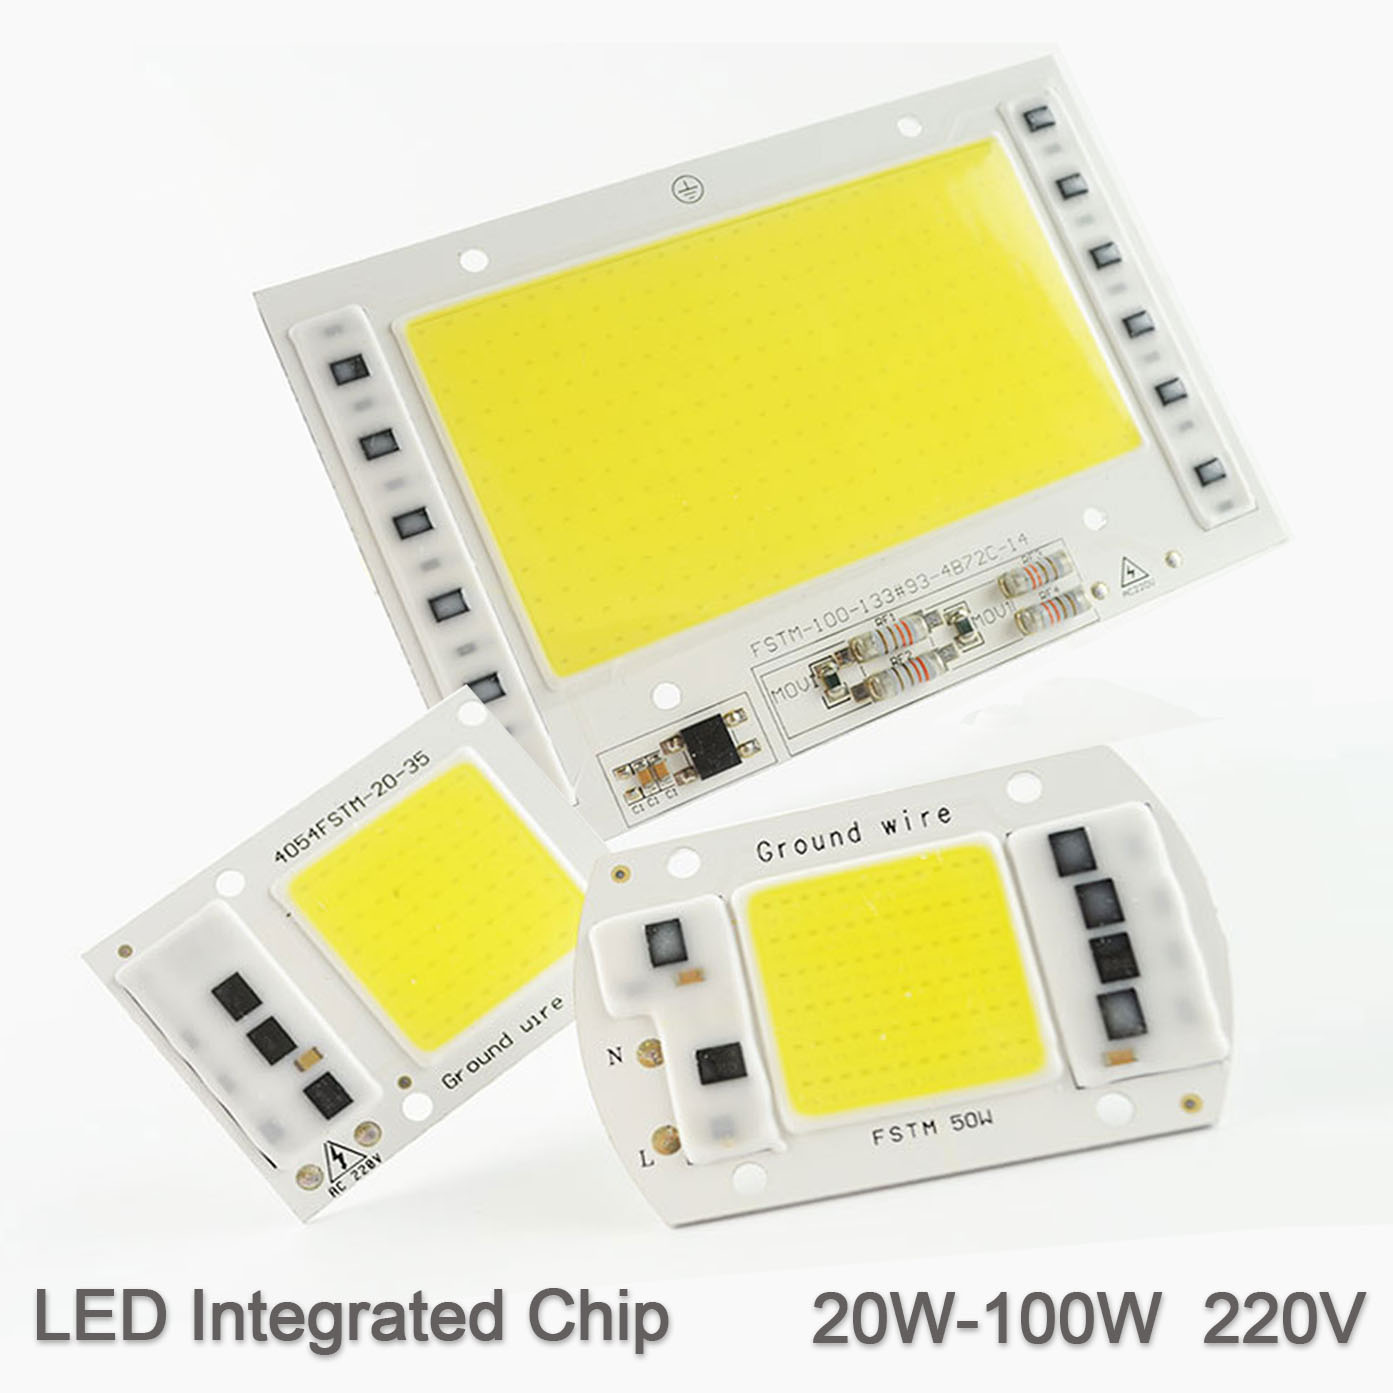 [DS] LED Lamp Chip Integrated COB 5W 20W 30W 50W 100W 220V Smart IC Driver Cold Warm White LED Spotlight Floodlight Growth Grow